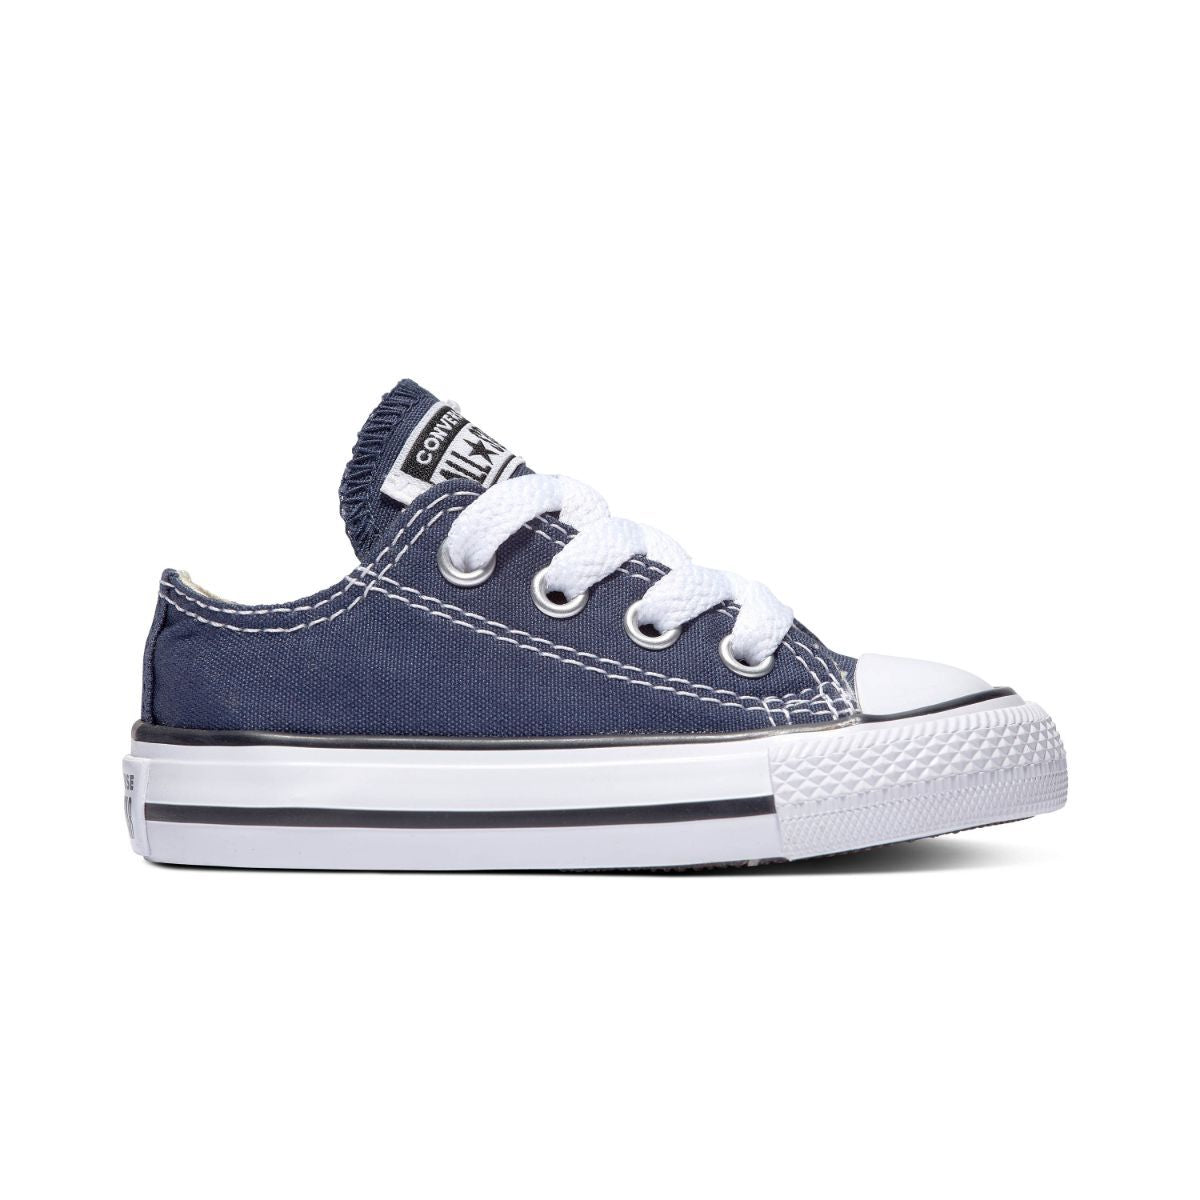 Toddler Chuck Taylor All Star Navy Low Top